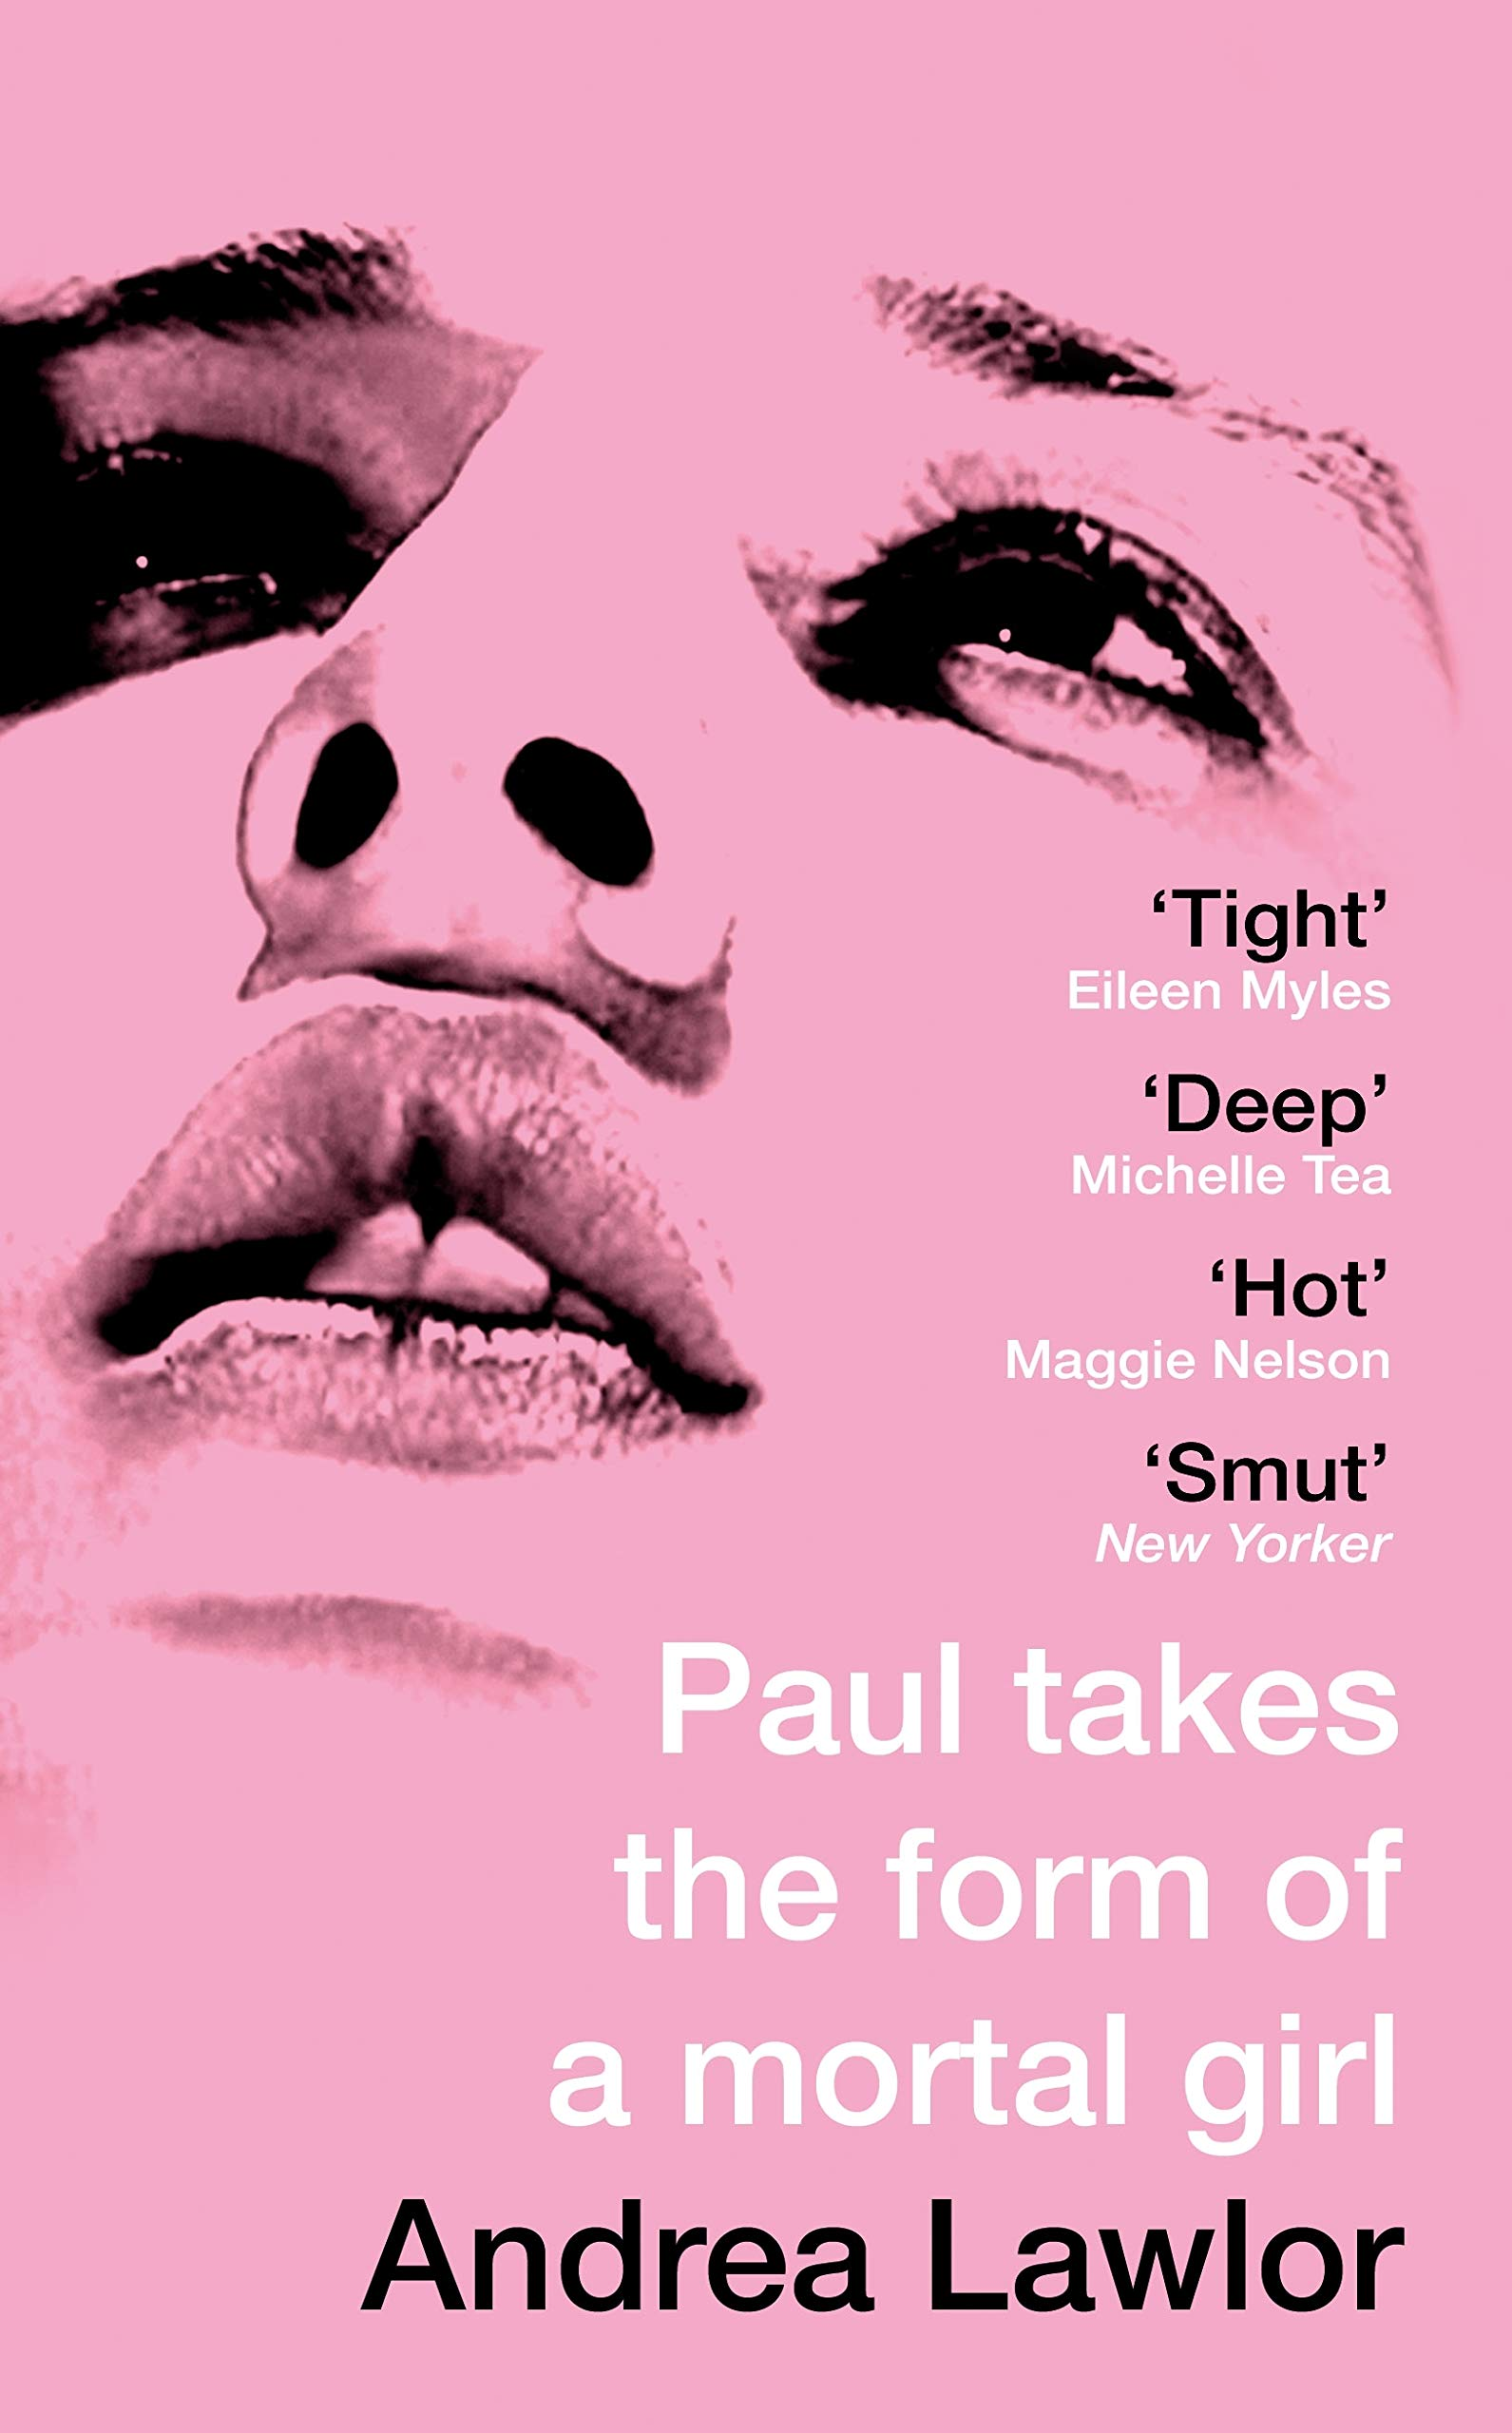 A pale pink book cover with a young androgynous face with parted lips.